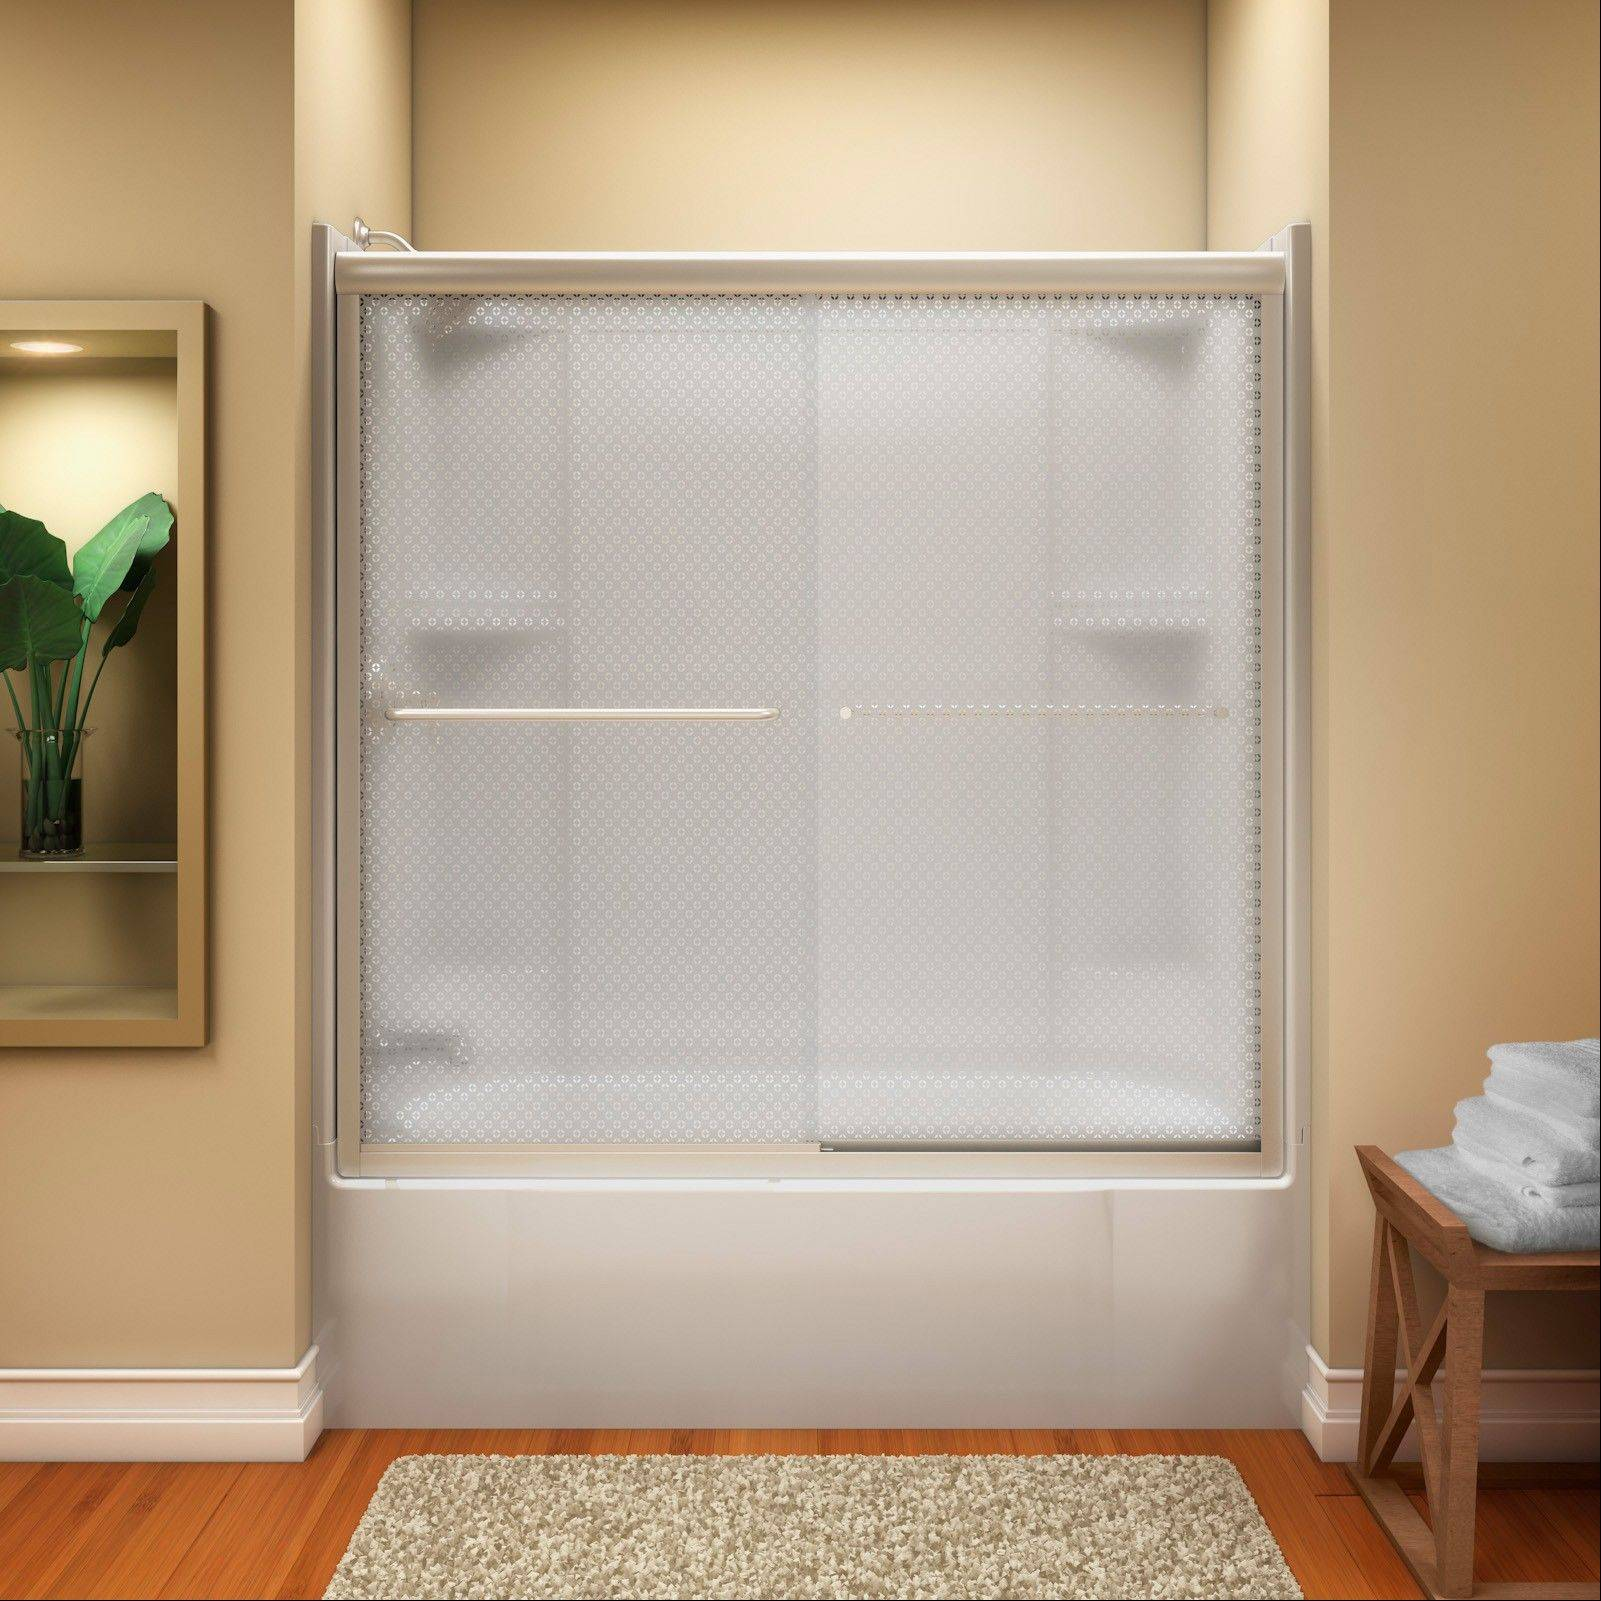 Upgrading to a glass shower door can add beauty to a bathroom and value to a home.